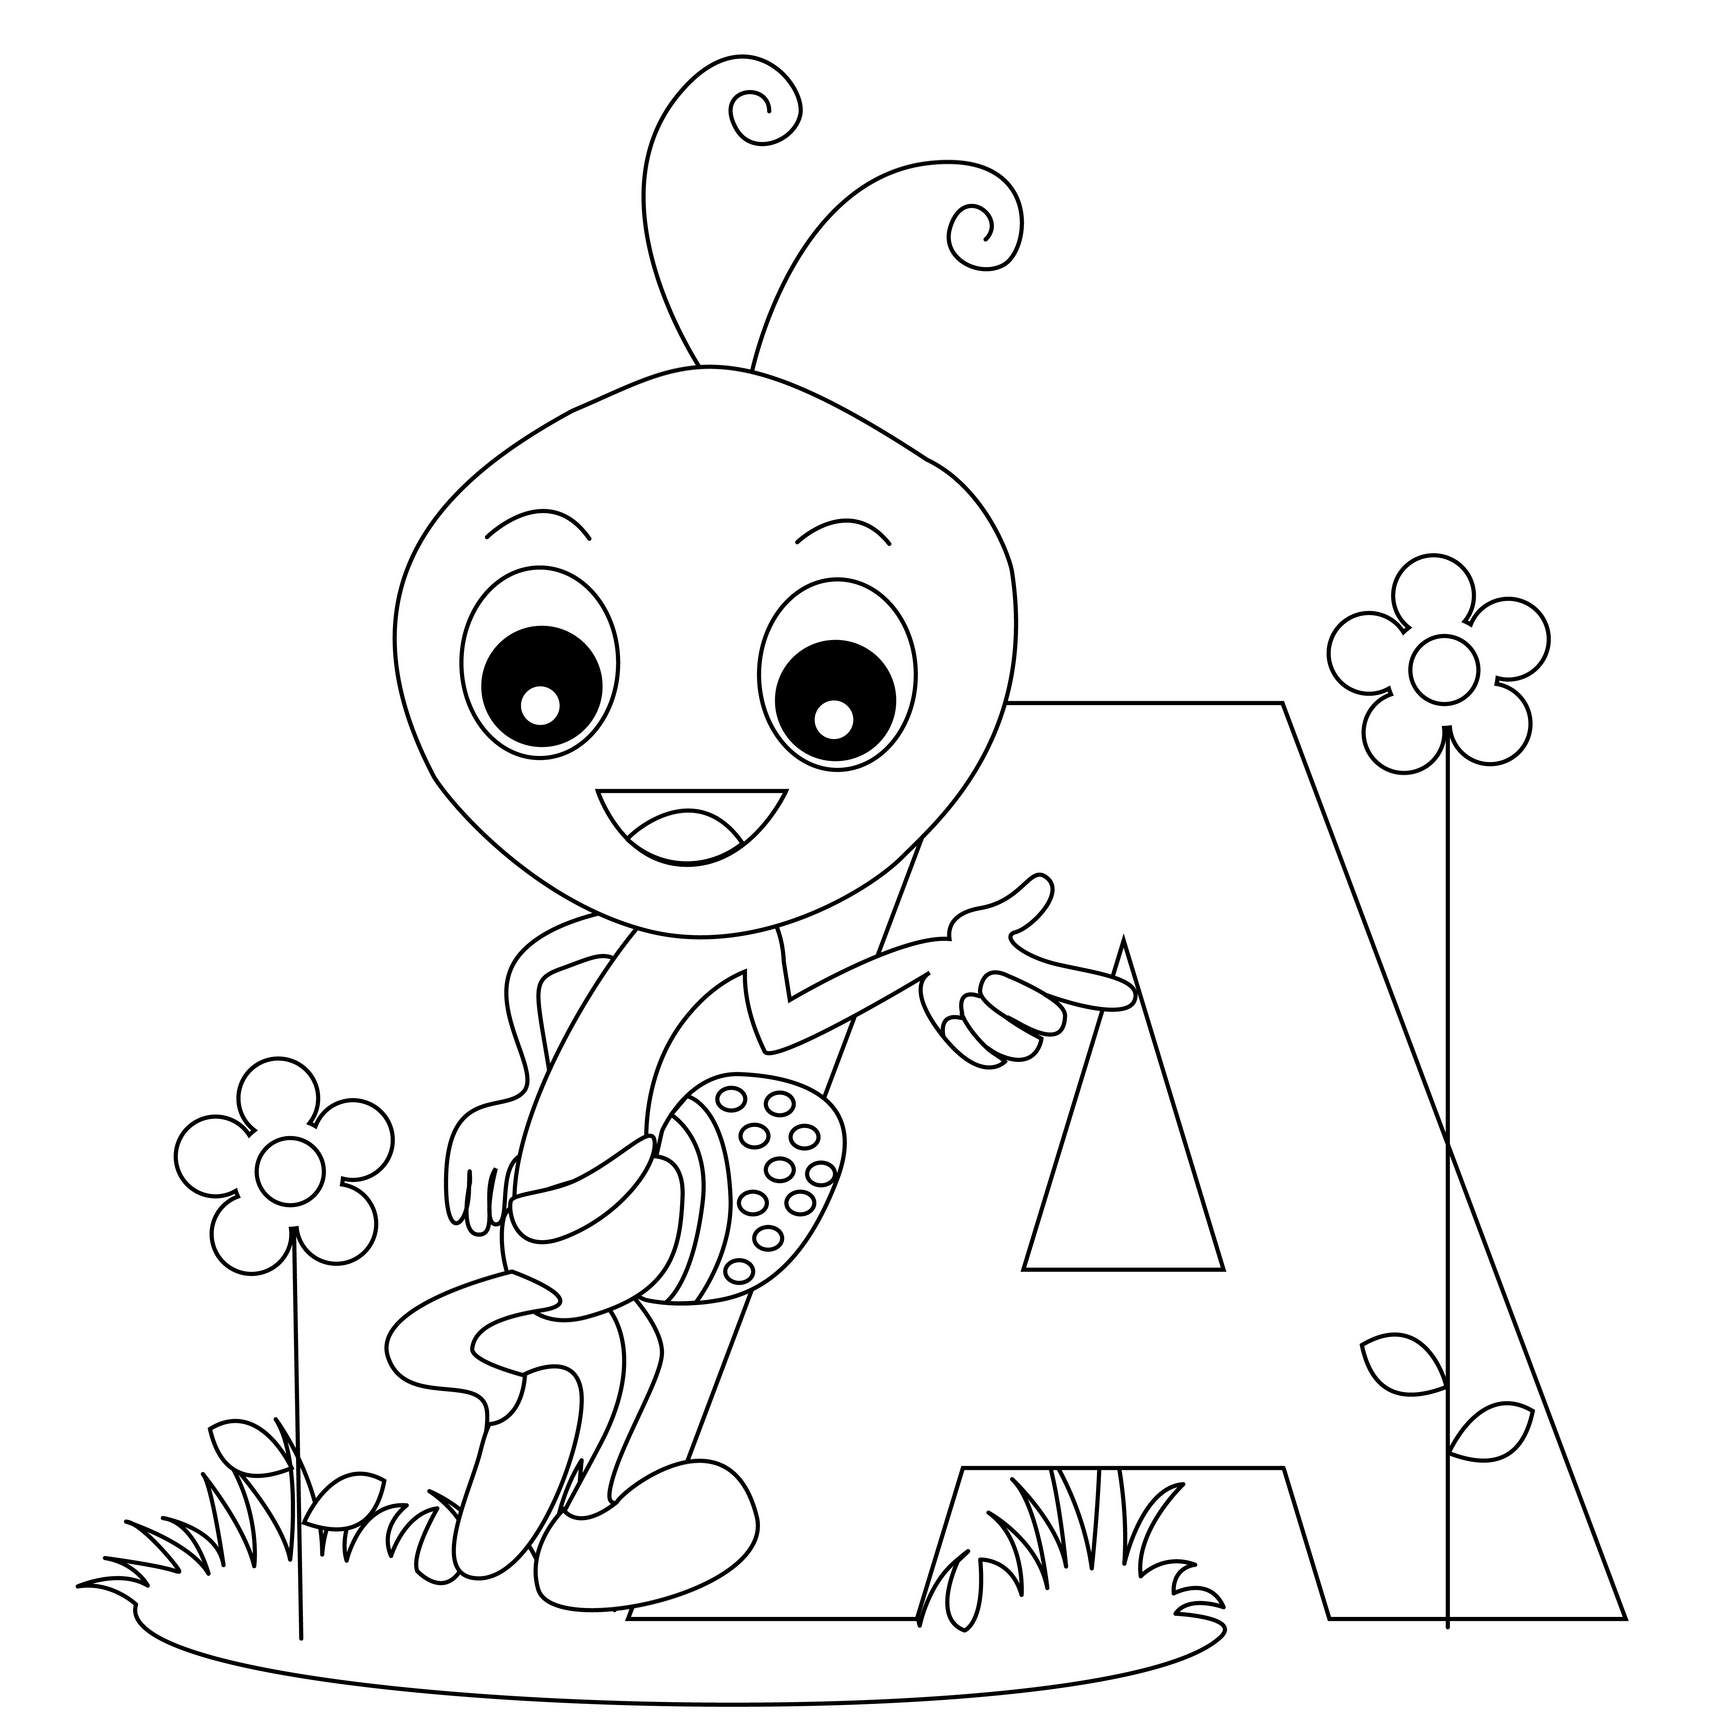 Coloring Pages Coloring Pages Of The Alphabet Letters alphabet letters coloring pages futpal com of the eassume